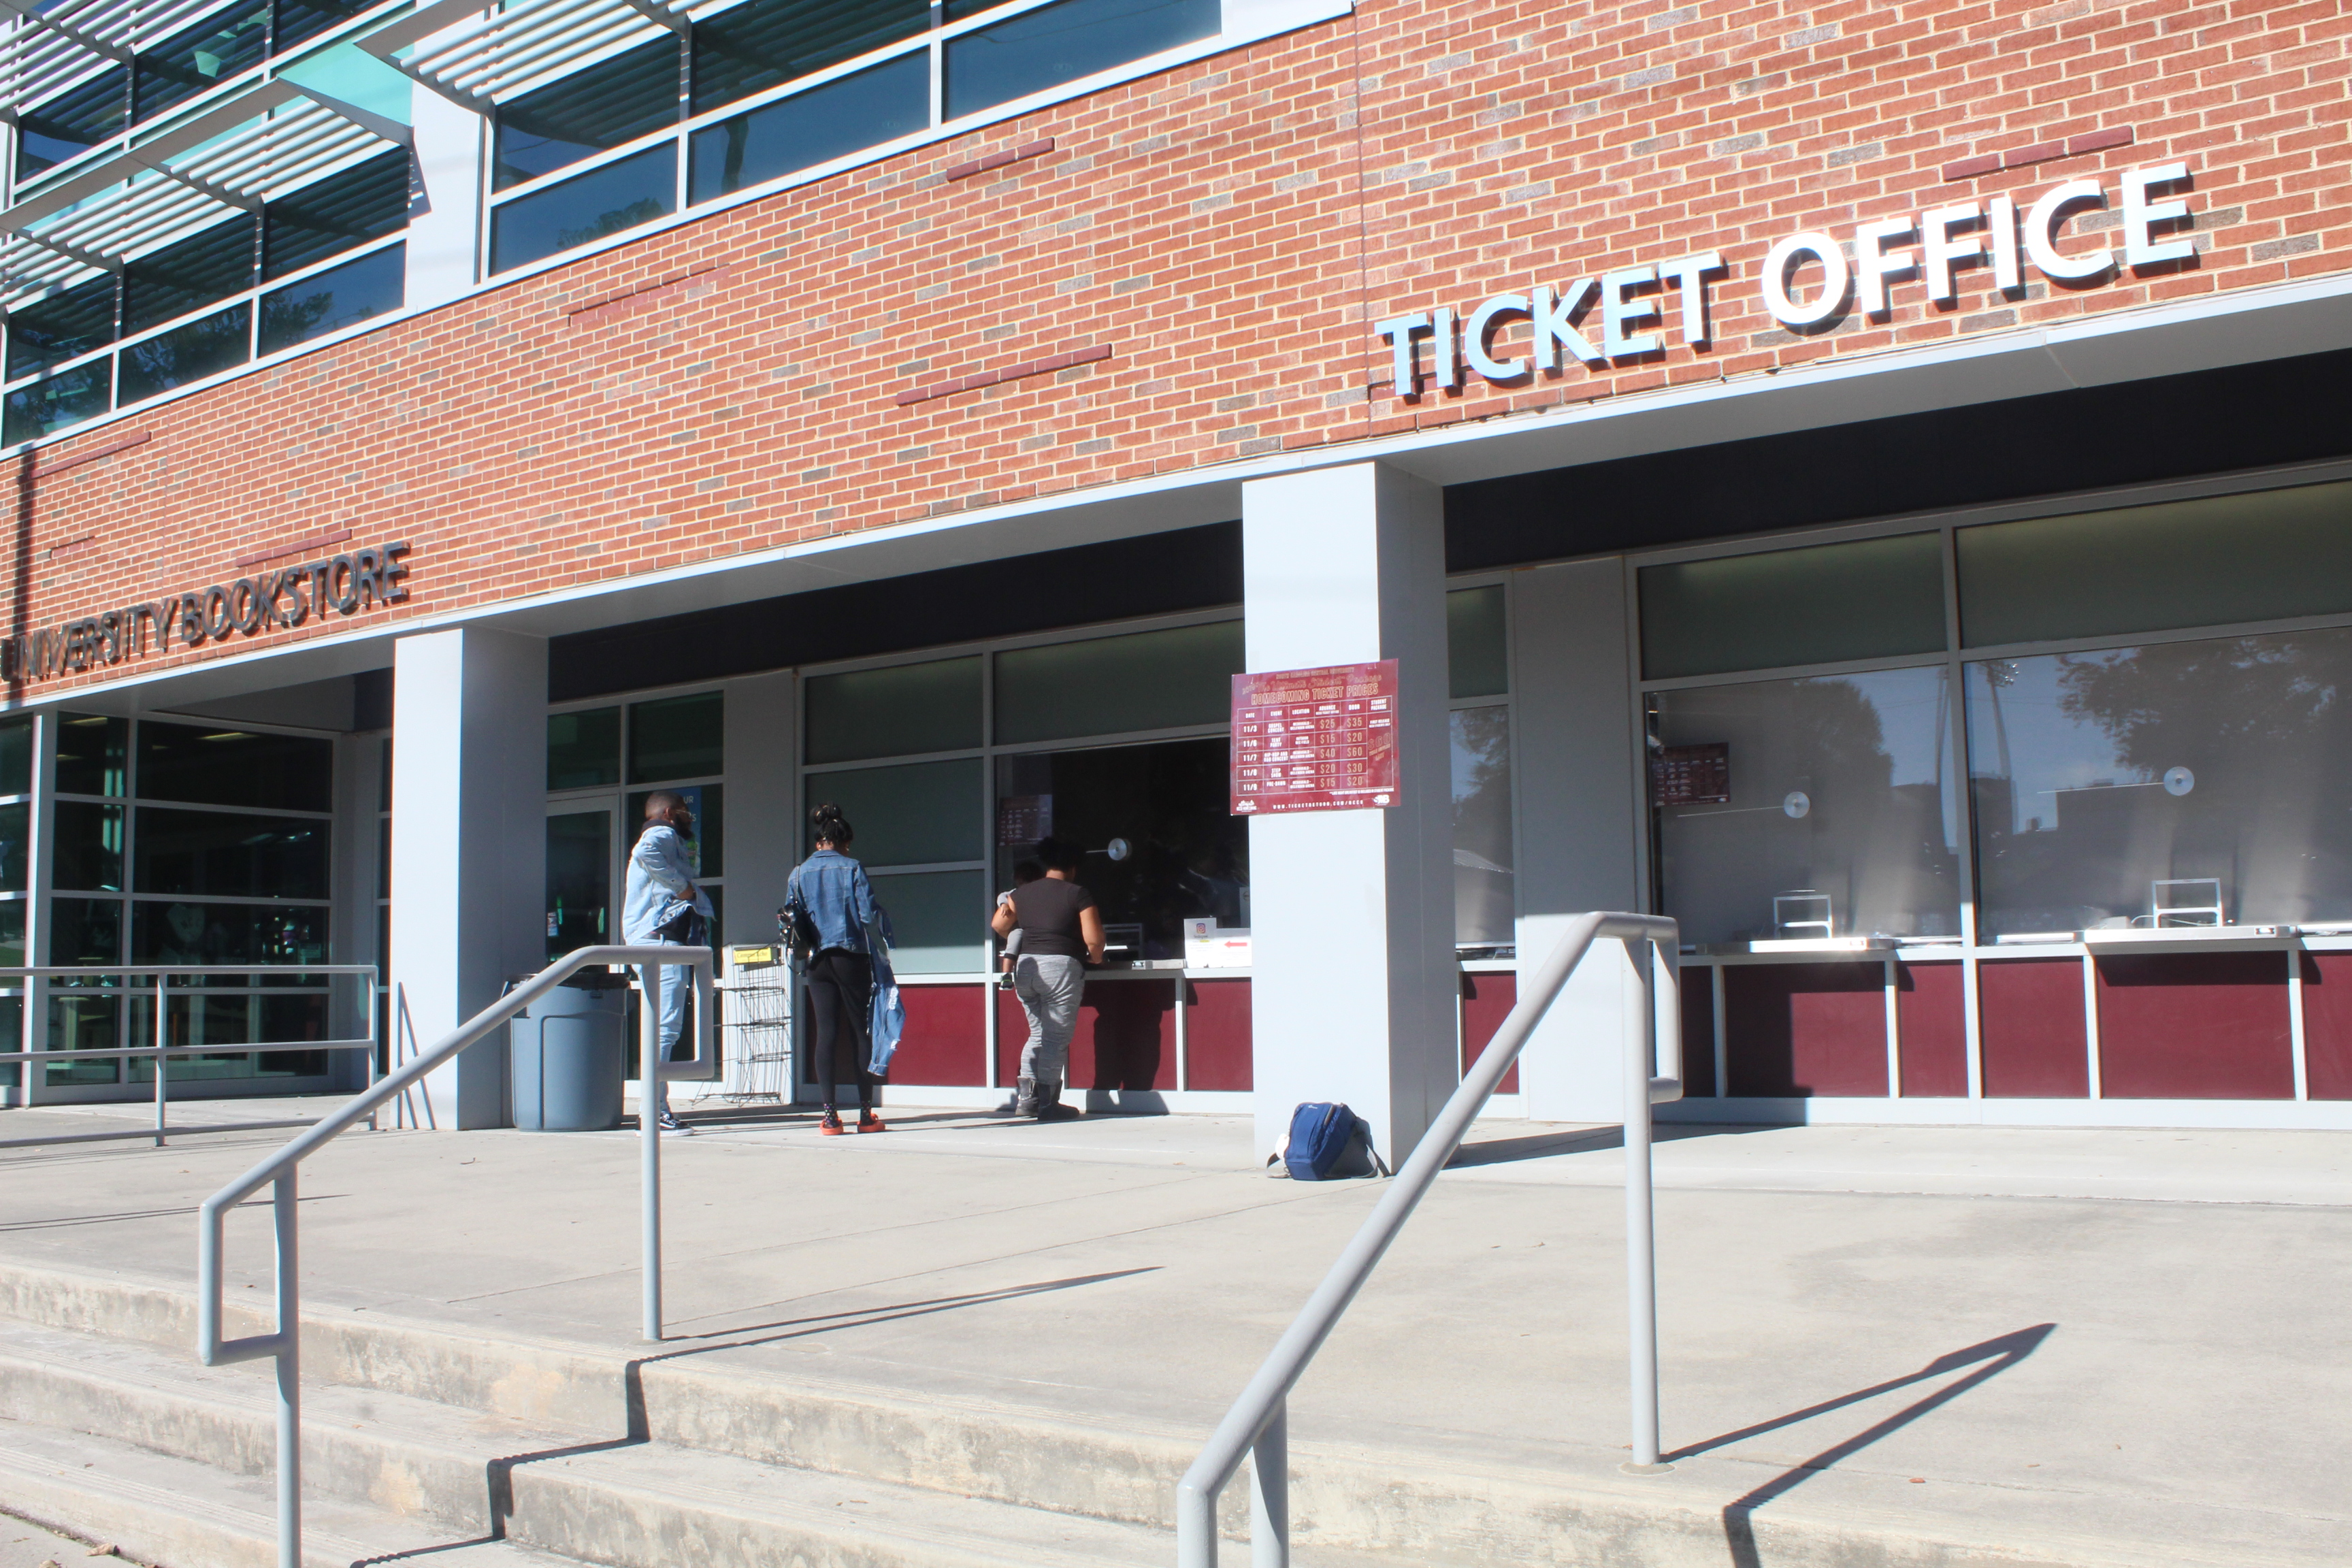 ticket-office-pic.jpg?time=1586382080